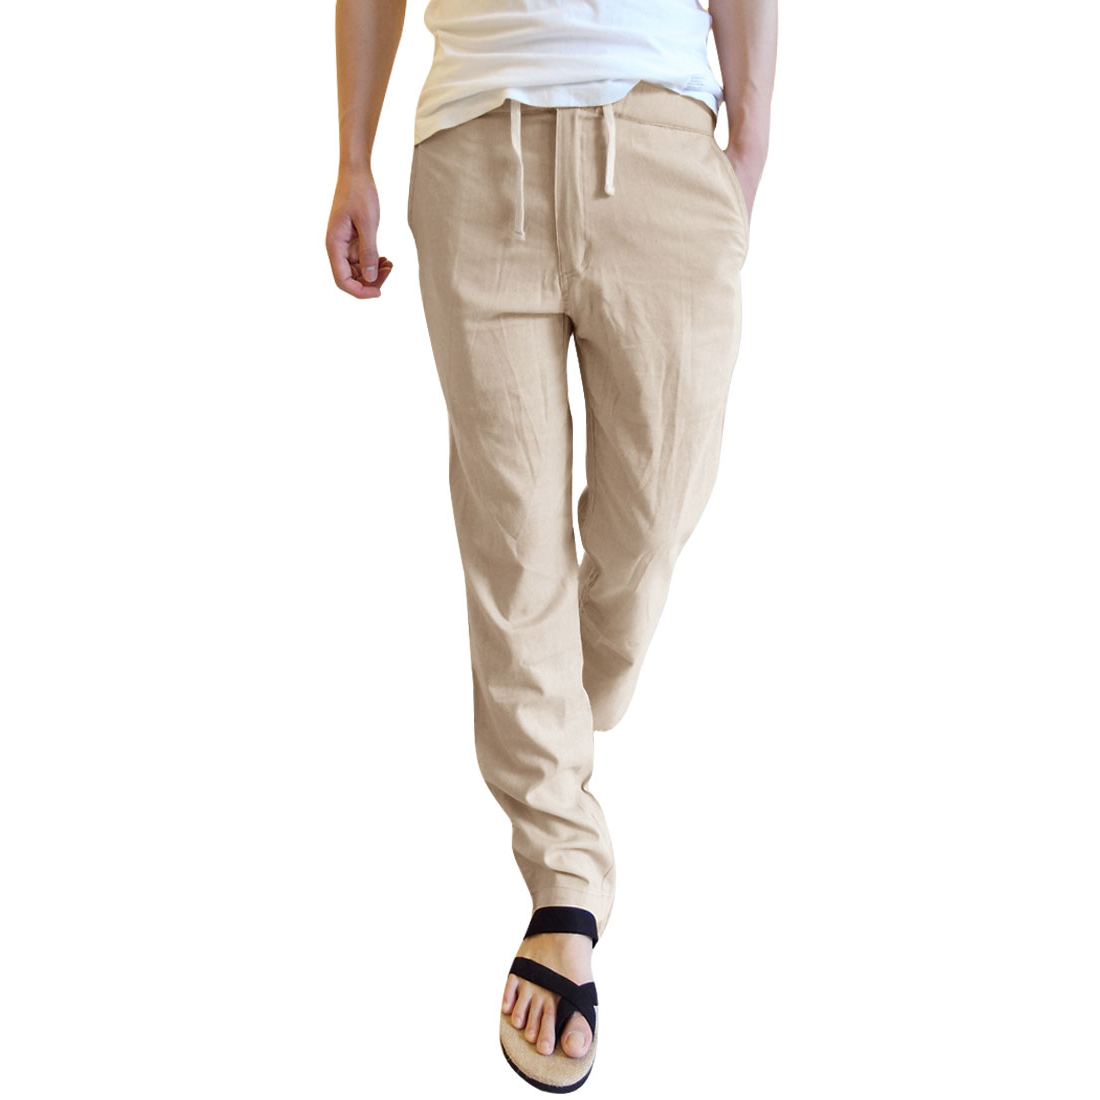 Stylish Men Zip Closure Slants Pockets Pants Beige W29